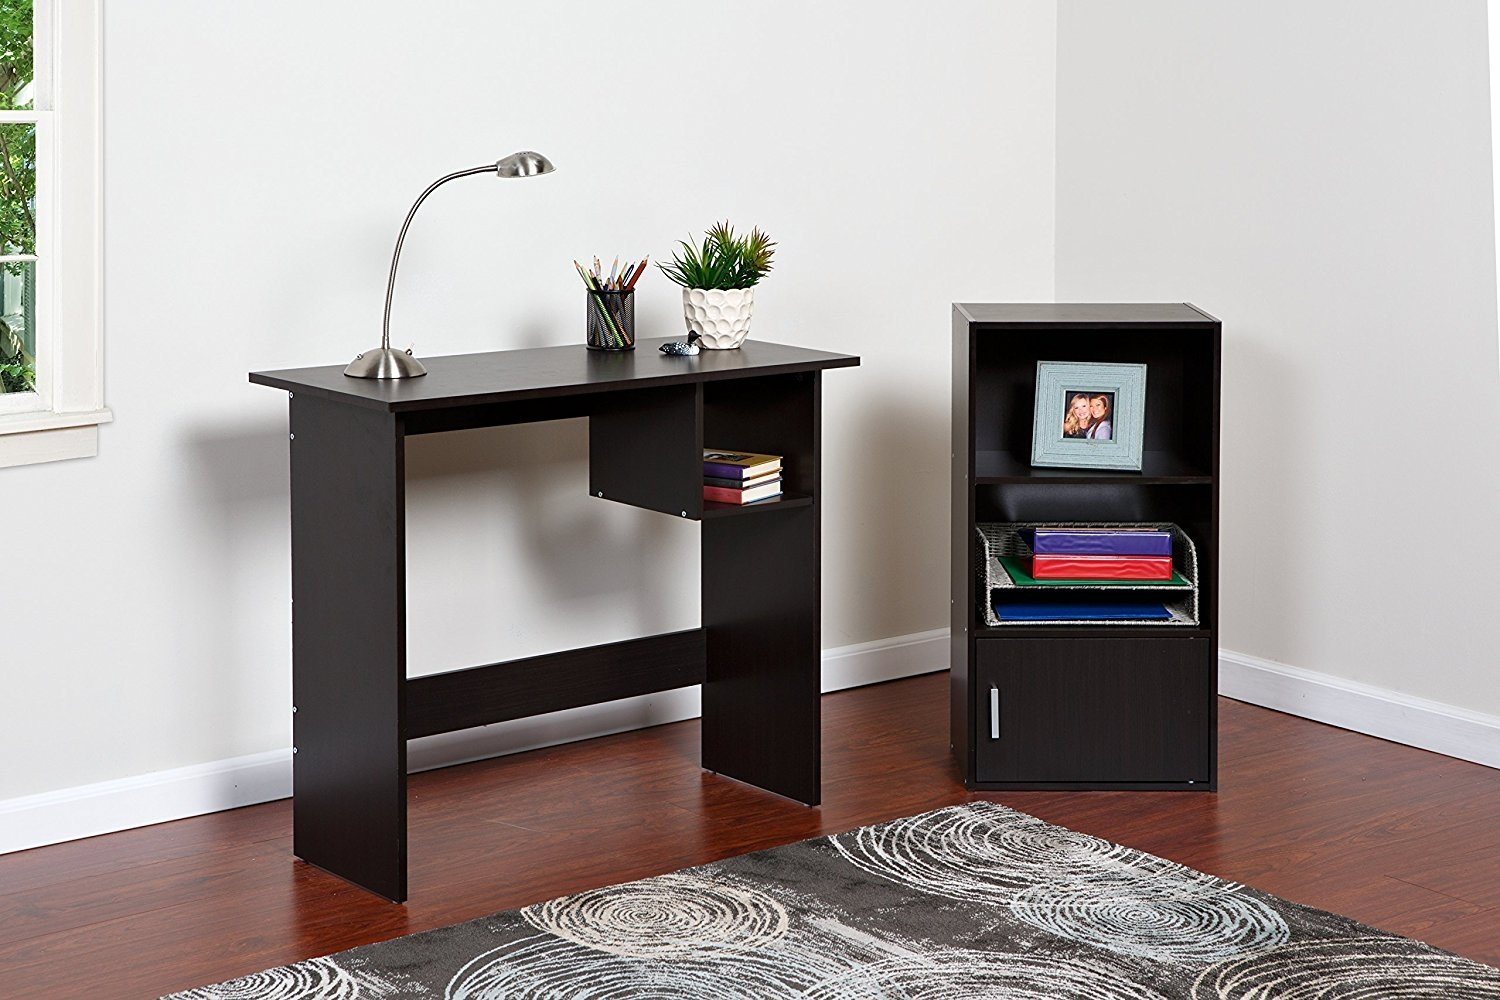 Indoor Multi-function Accent table Study Computer Home Office Desk Bedroom Living Room Modern Style End Table Sofa Side Table Coffee Table Modern Desk